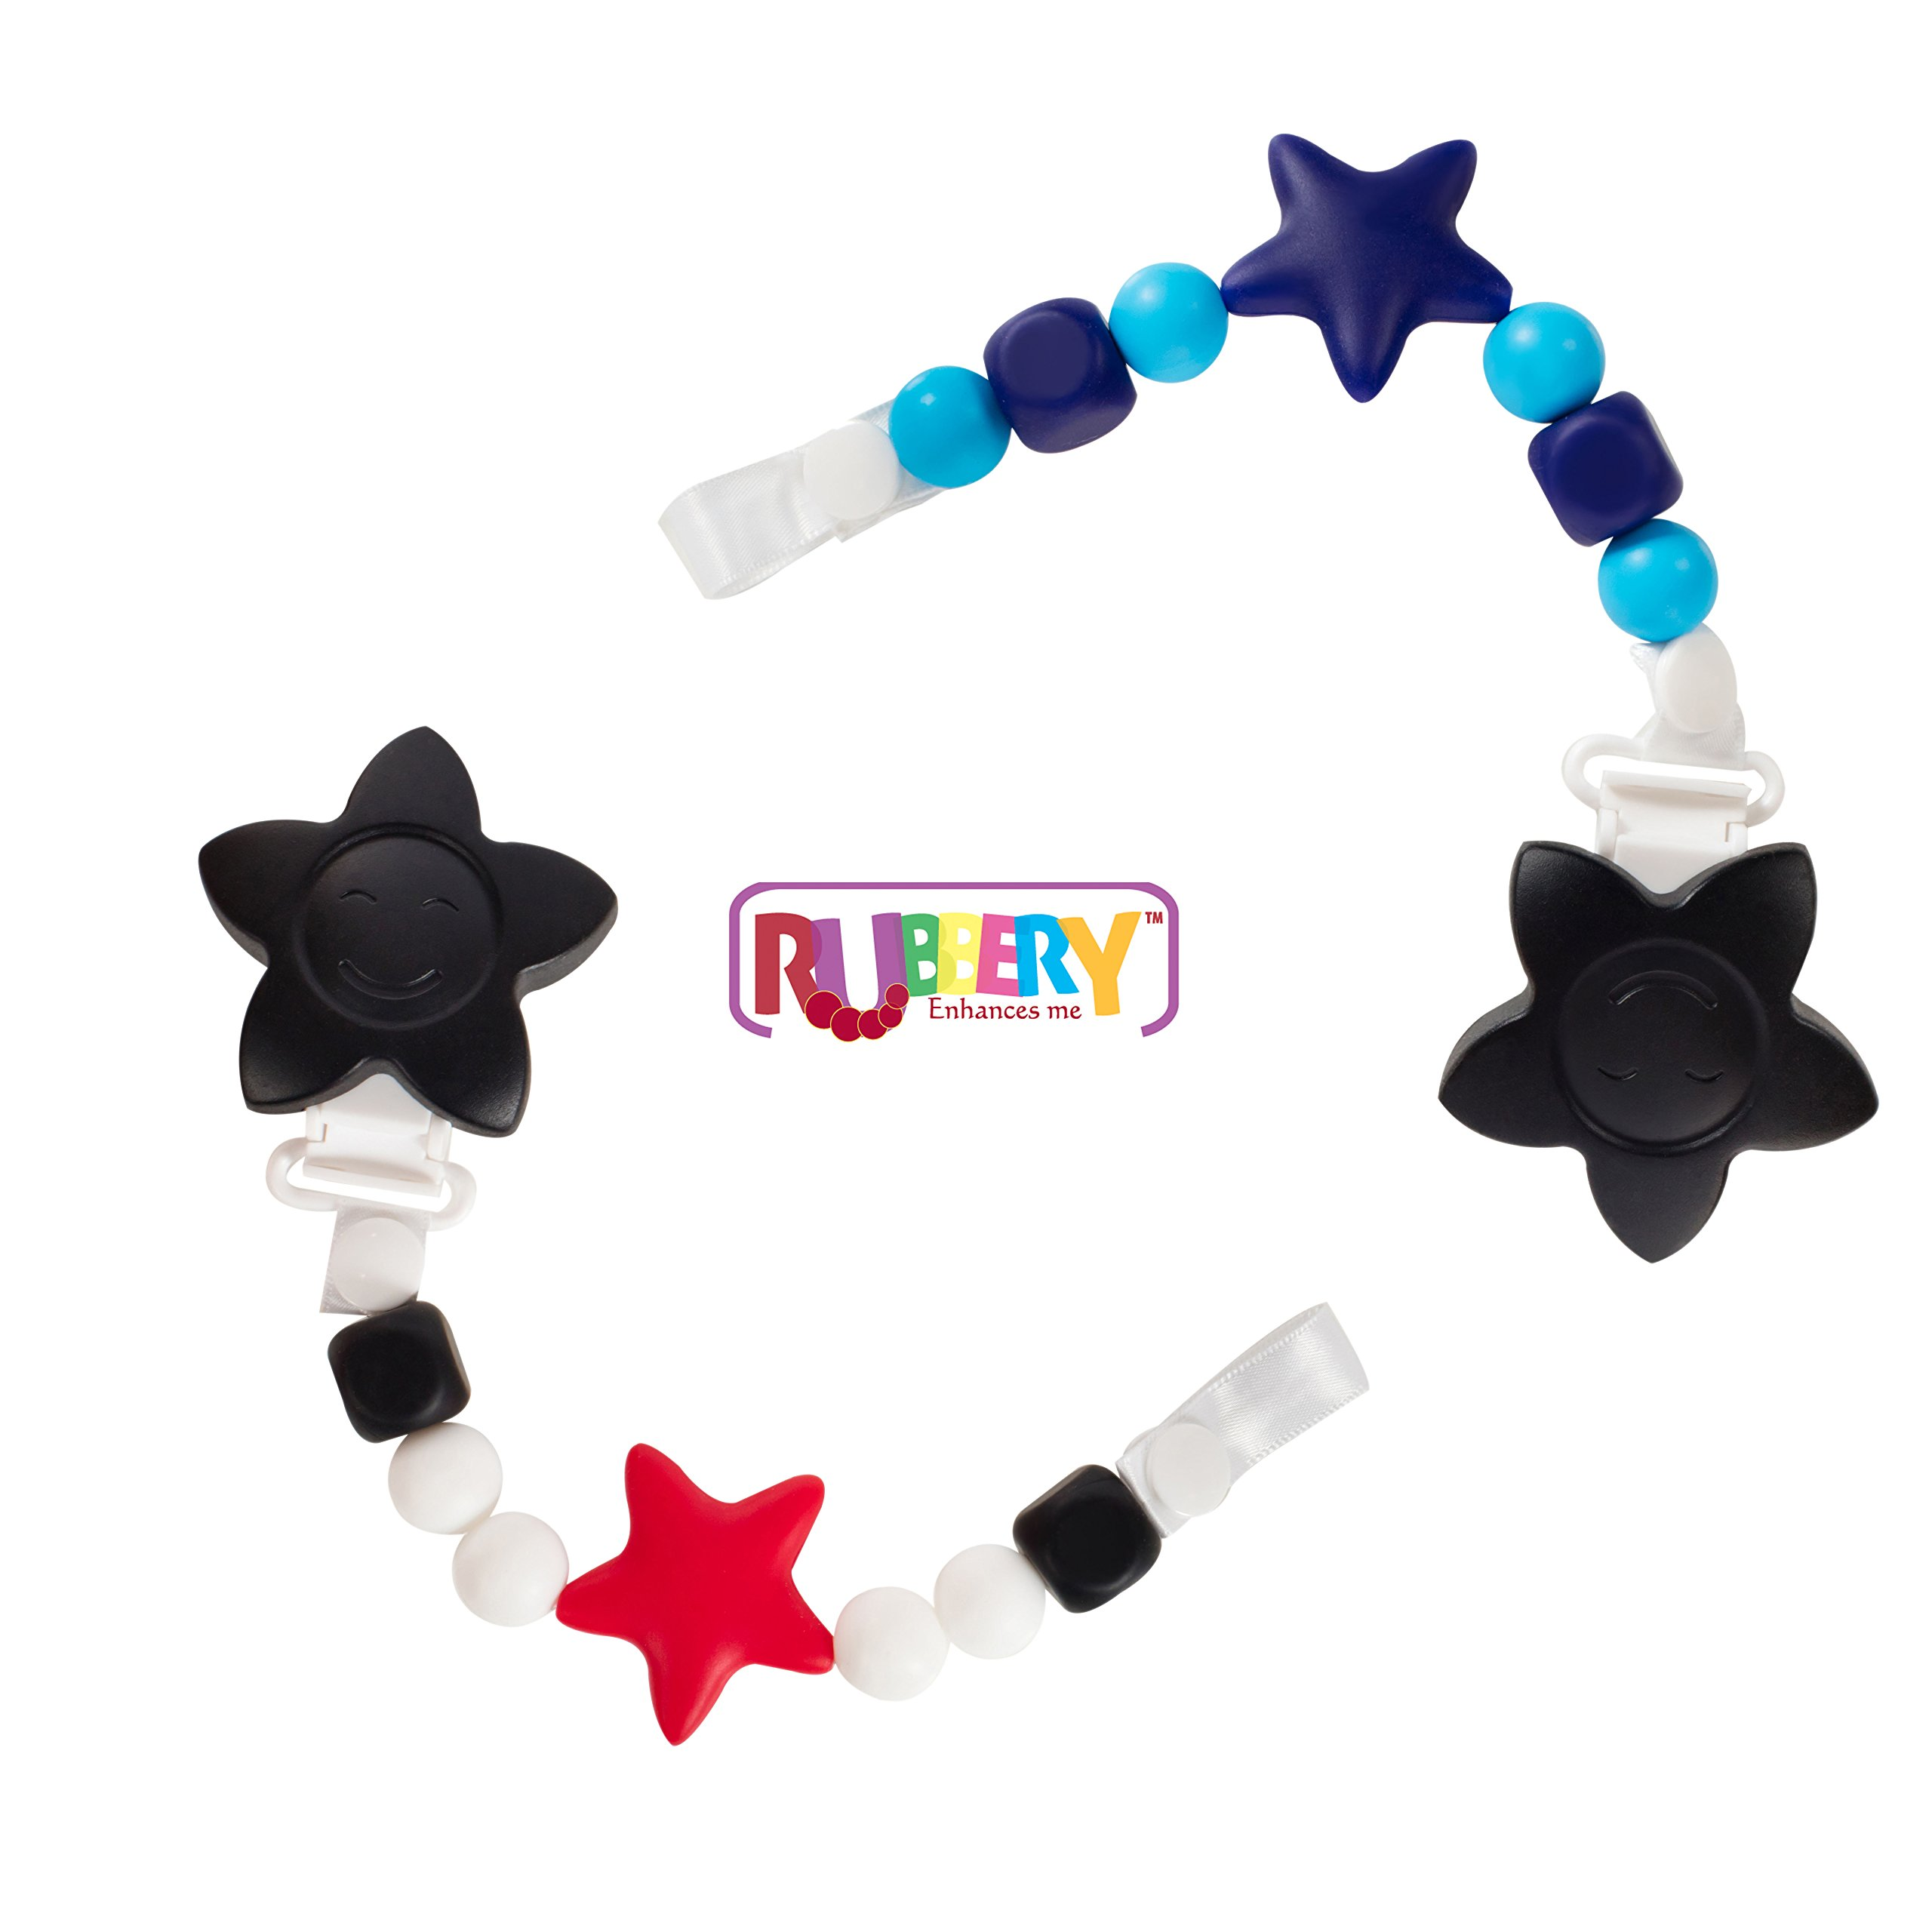 SALE 2 Black and Red Teether Toy Pacifier Clip Baby Girl or Boy Star Beaded Silicone Teething Toy and Pacifier Clip Light Blue Navy Black by Rubbery Enhances me